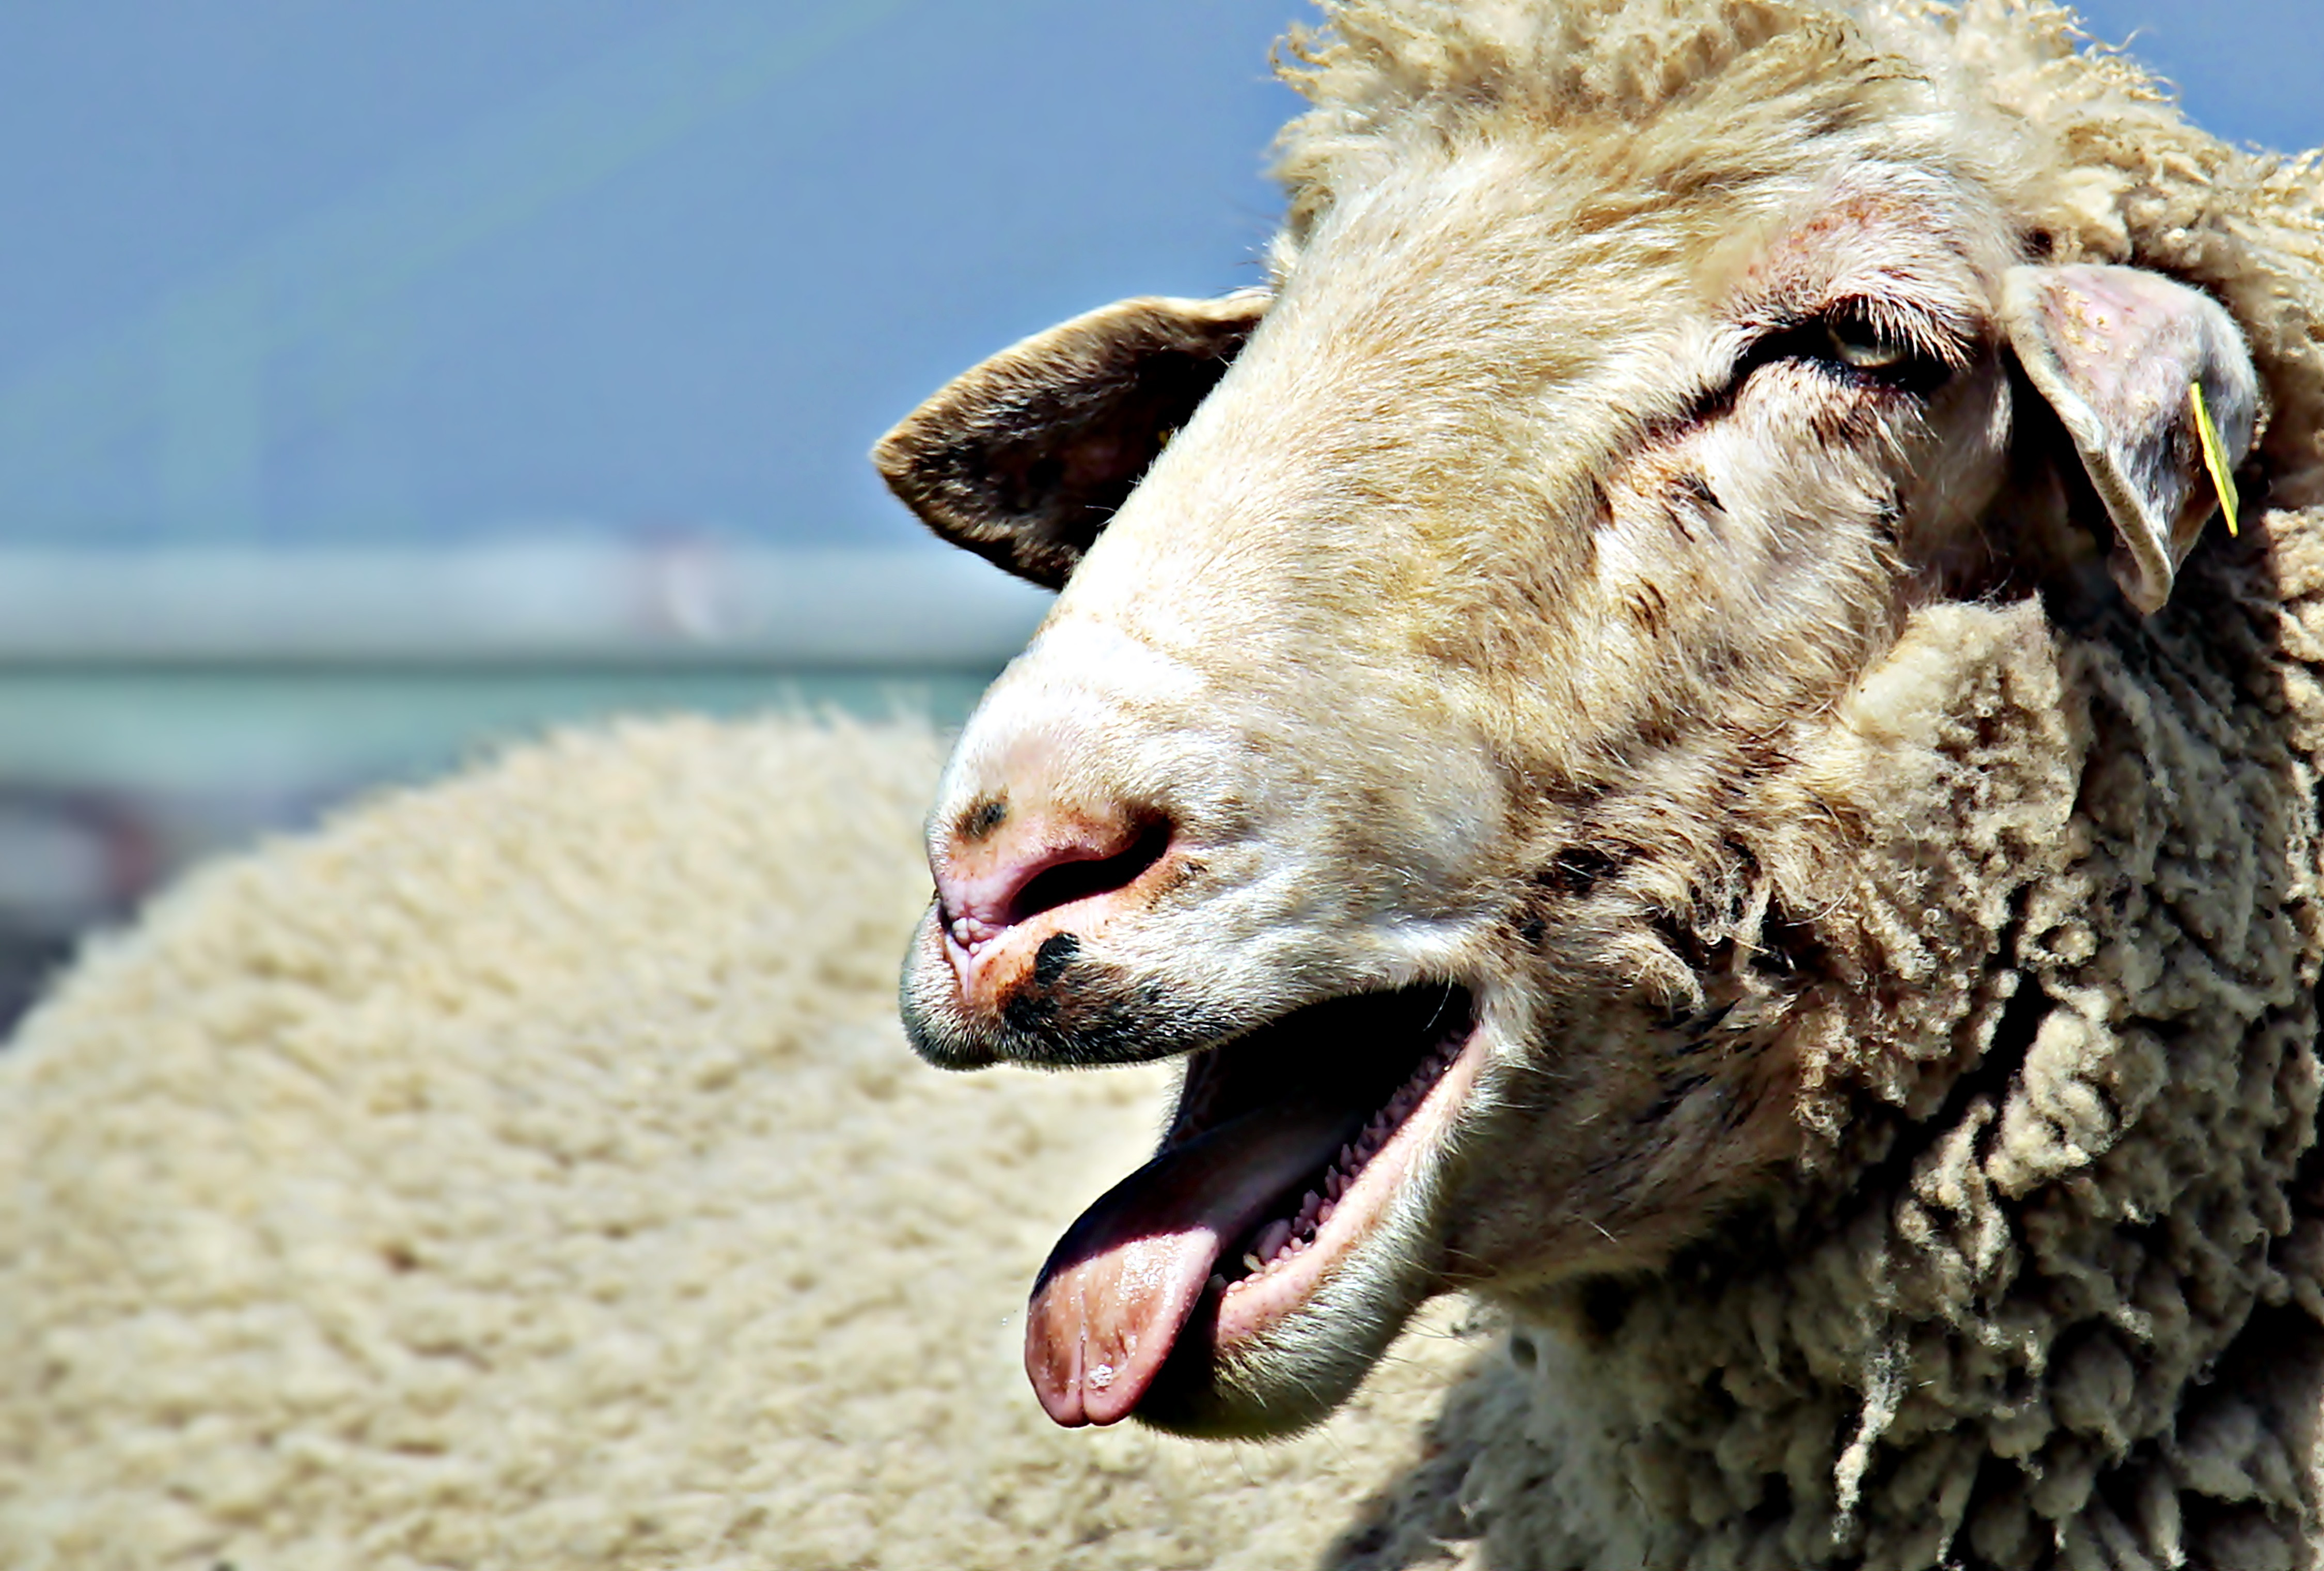 Wallpaper Of Cute Animals For Mobile Focus Photo Of Brown Sheep Under Blue Sky 183 Free Stock Photo